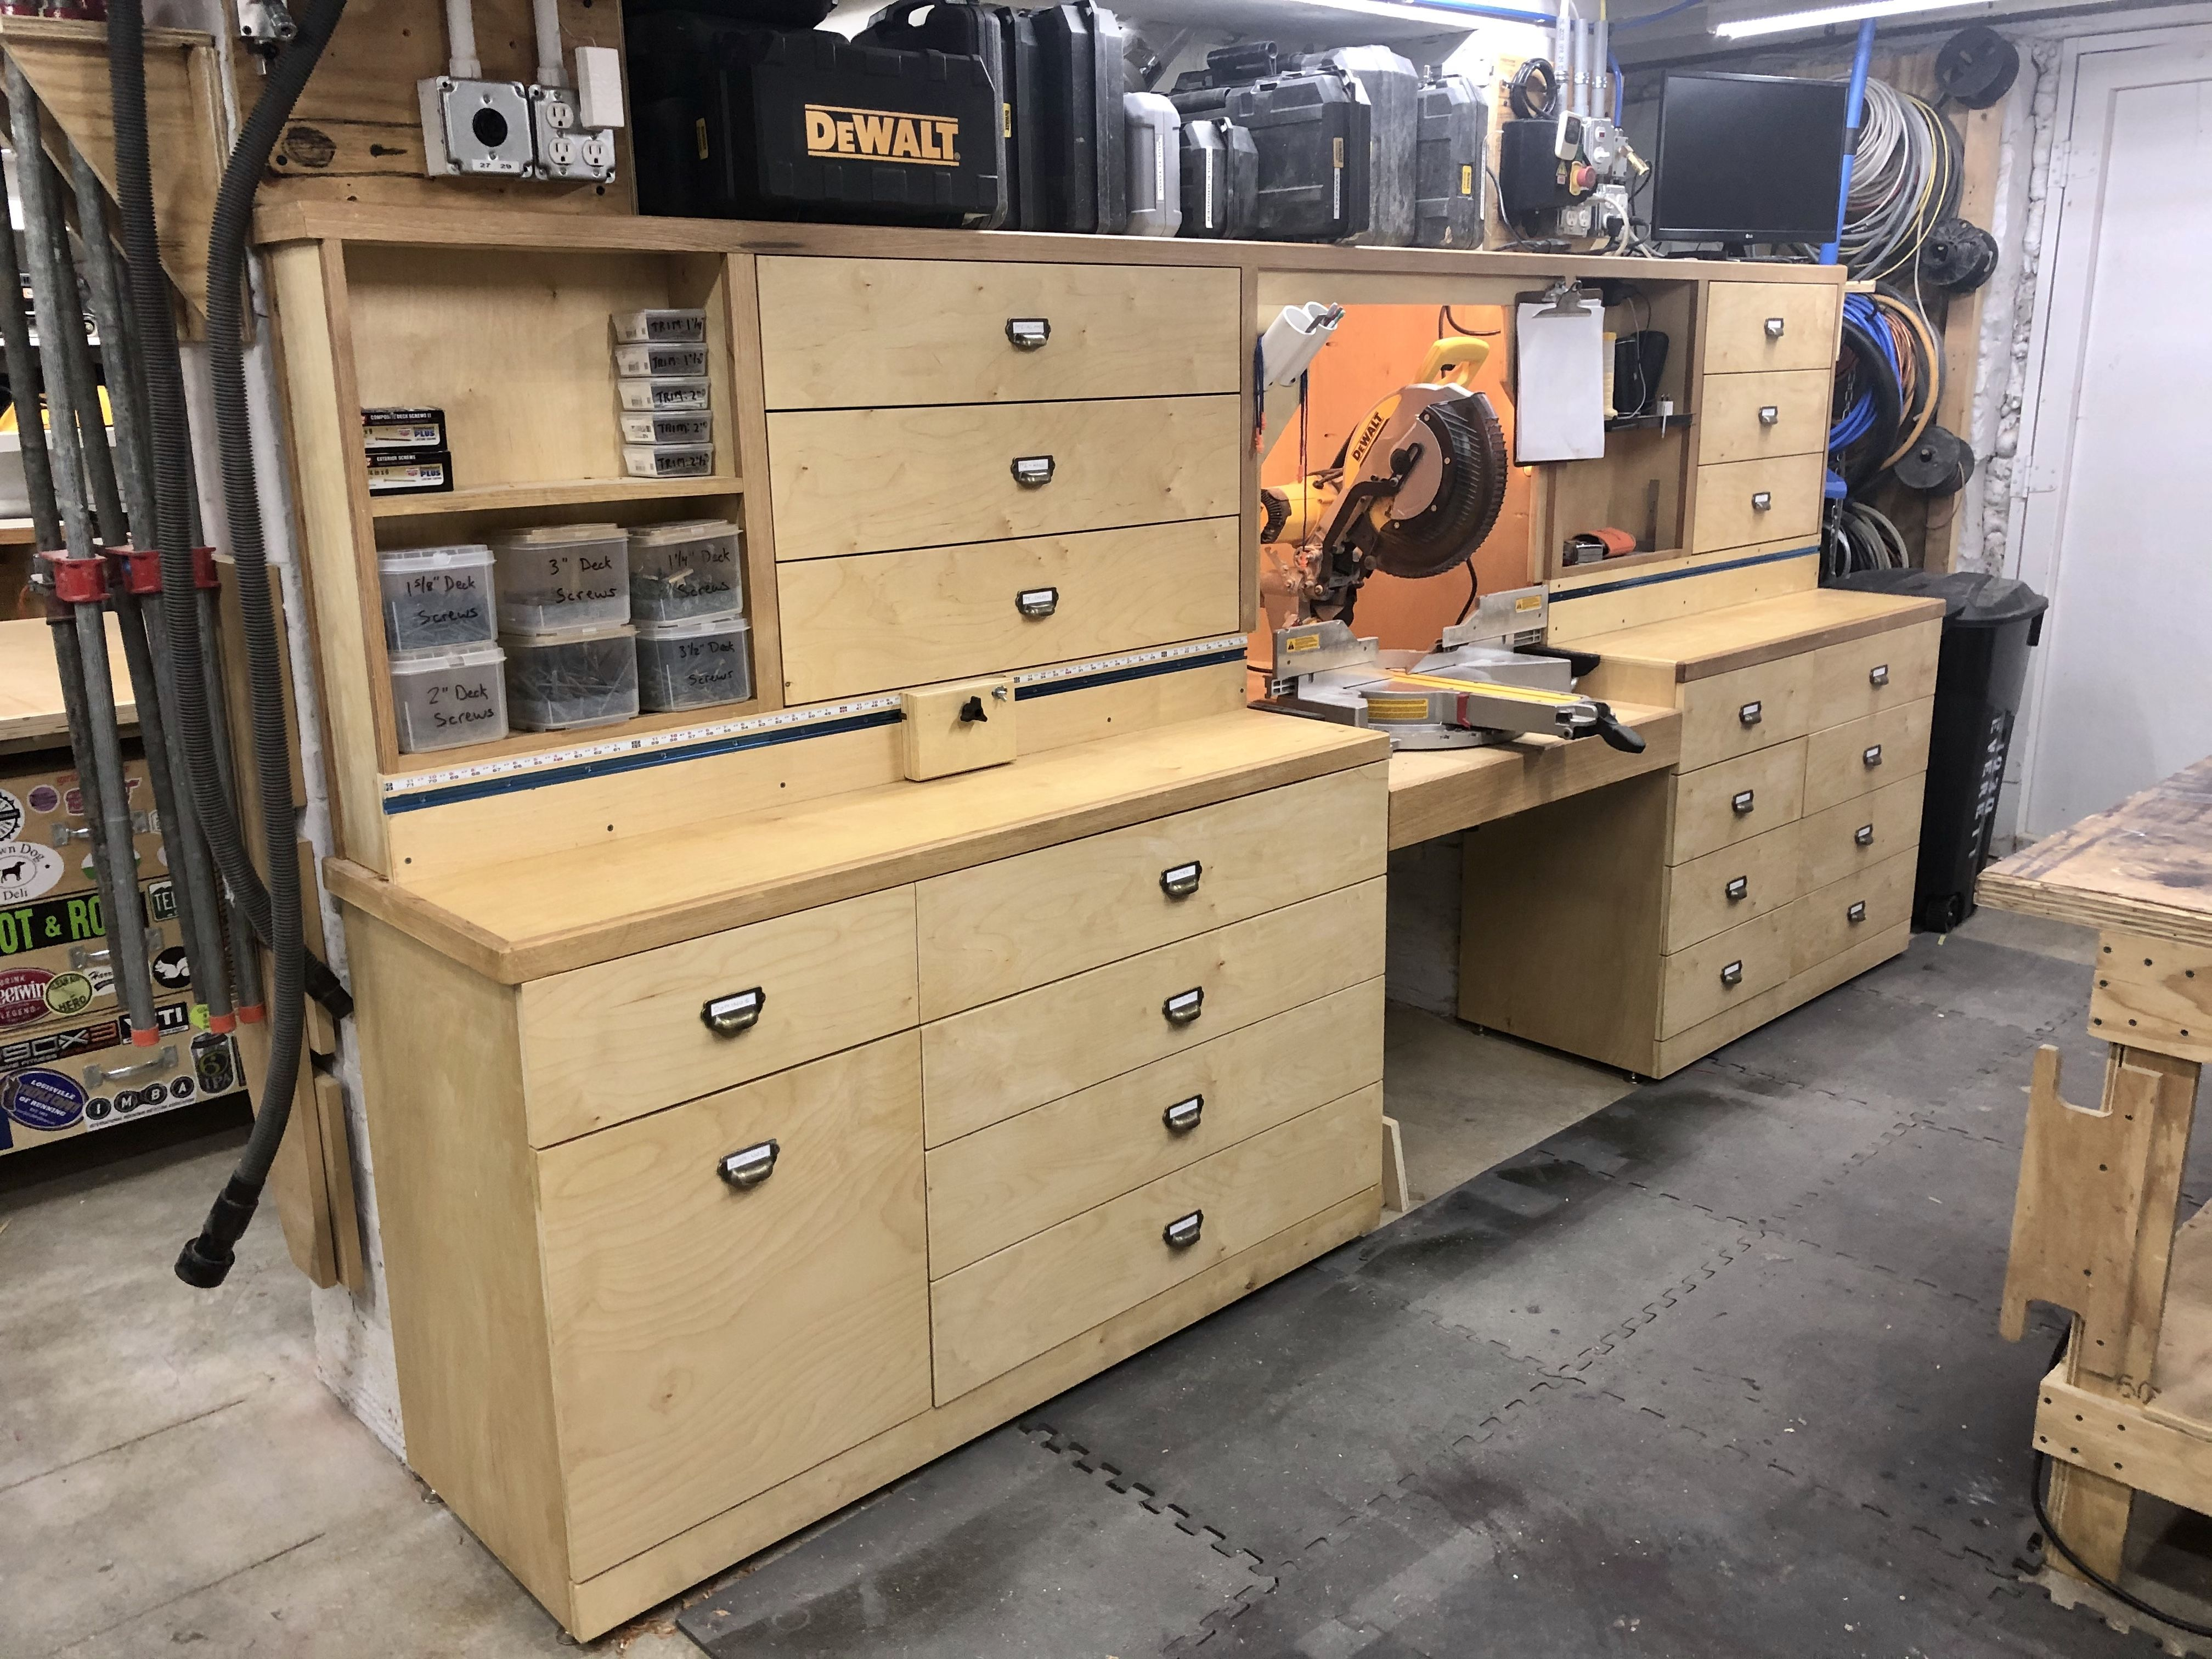 Pin By Steve Gruber On Woodworking Shop Projects In 2020 Mitre Saw Station Woodworking Shop Projects Miter Saw